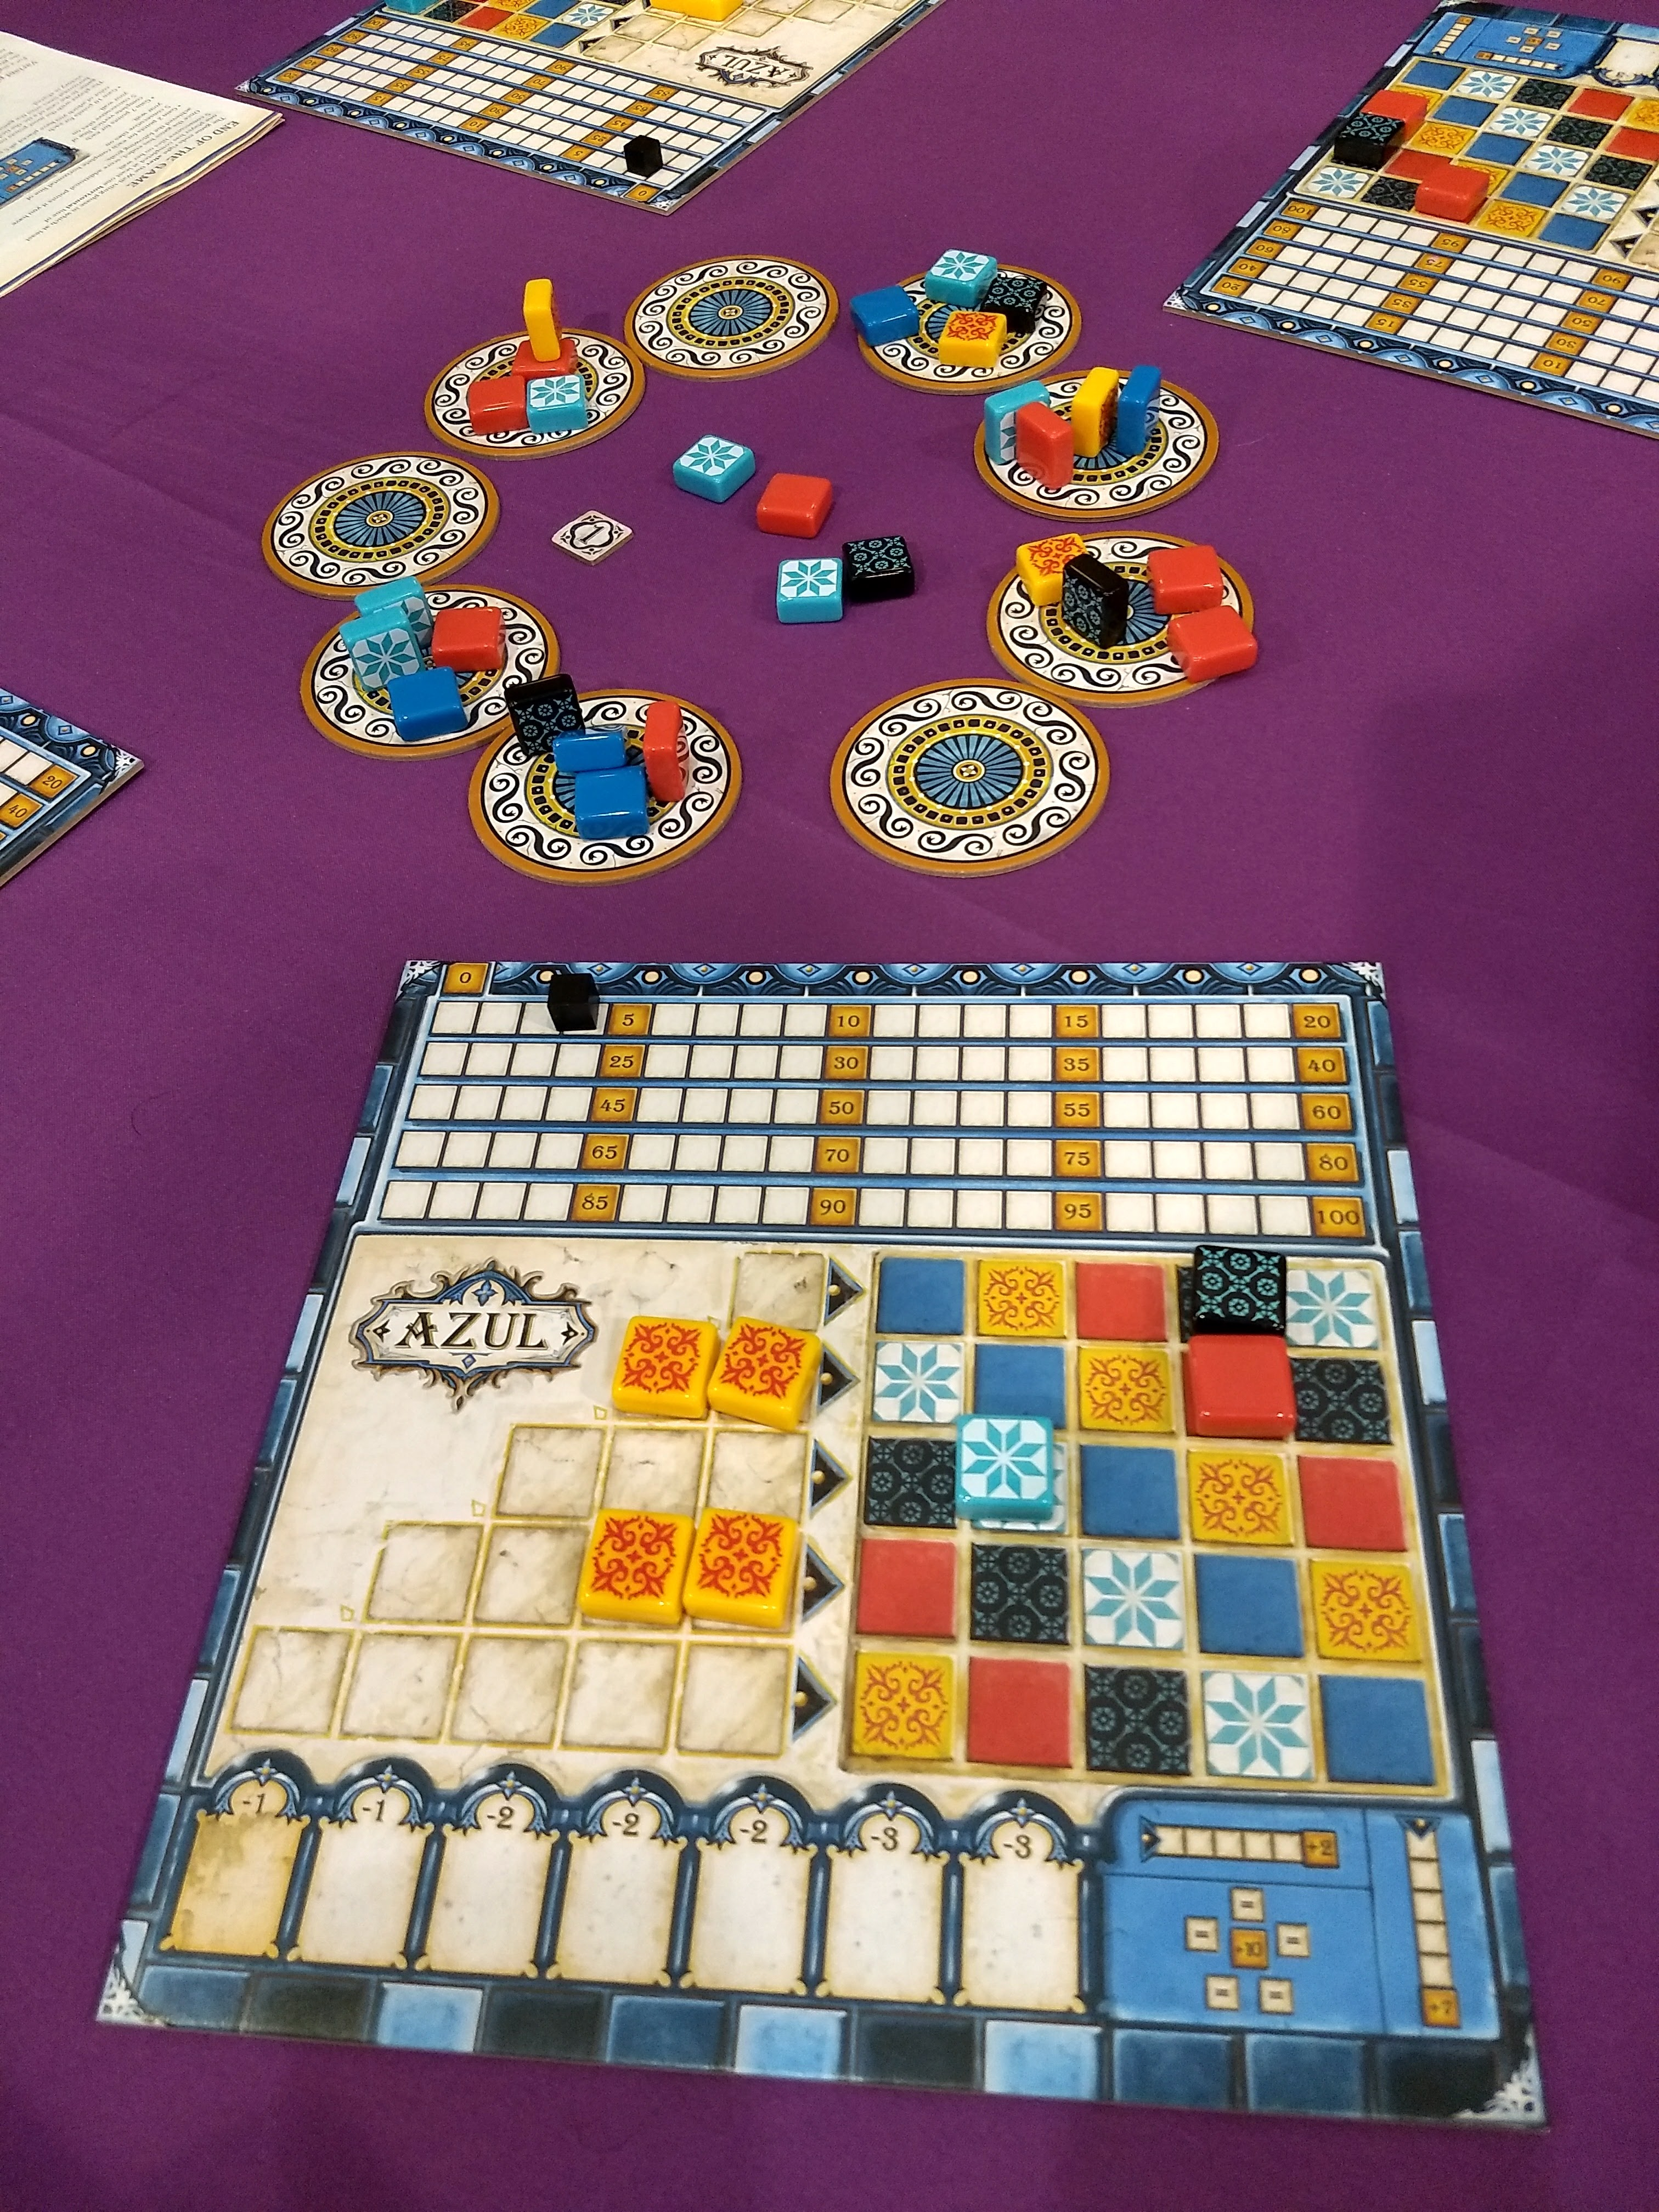 The Best Board Games Of 2017 Ars Technica There Are 2 Boards Main And A Second One For Controls Azul Will Have To Be In Contention Next Years Spiel Des Jahres Gaming Awards Germany Game Defines Elegance With Its Minimal Ruleset